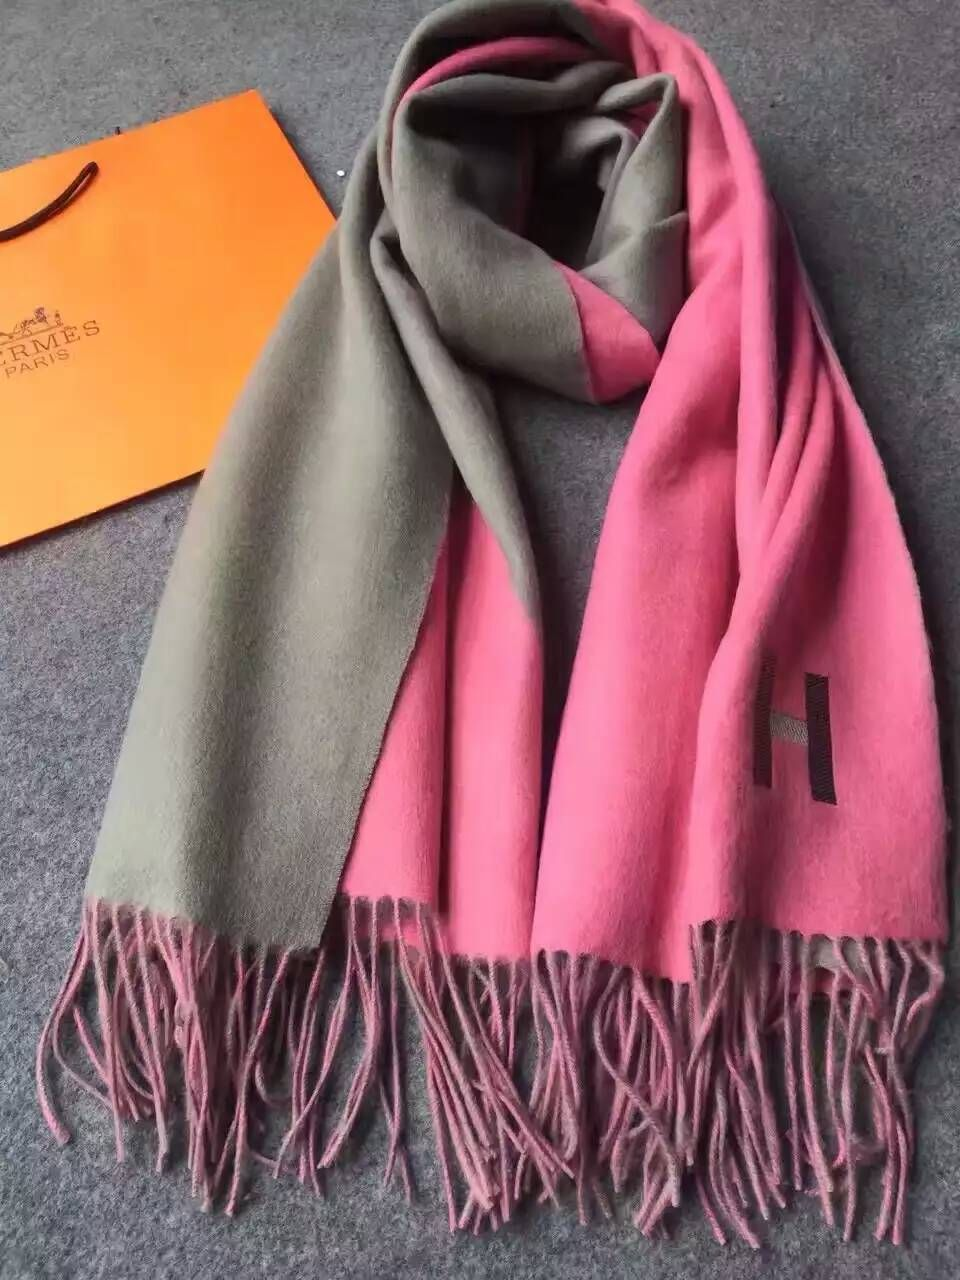 aec8c7a0e8728 ... best price latest hermes cashmere scarves pink f2cfb 0d2a3